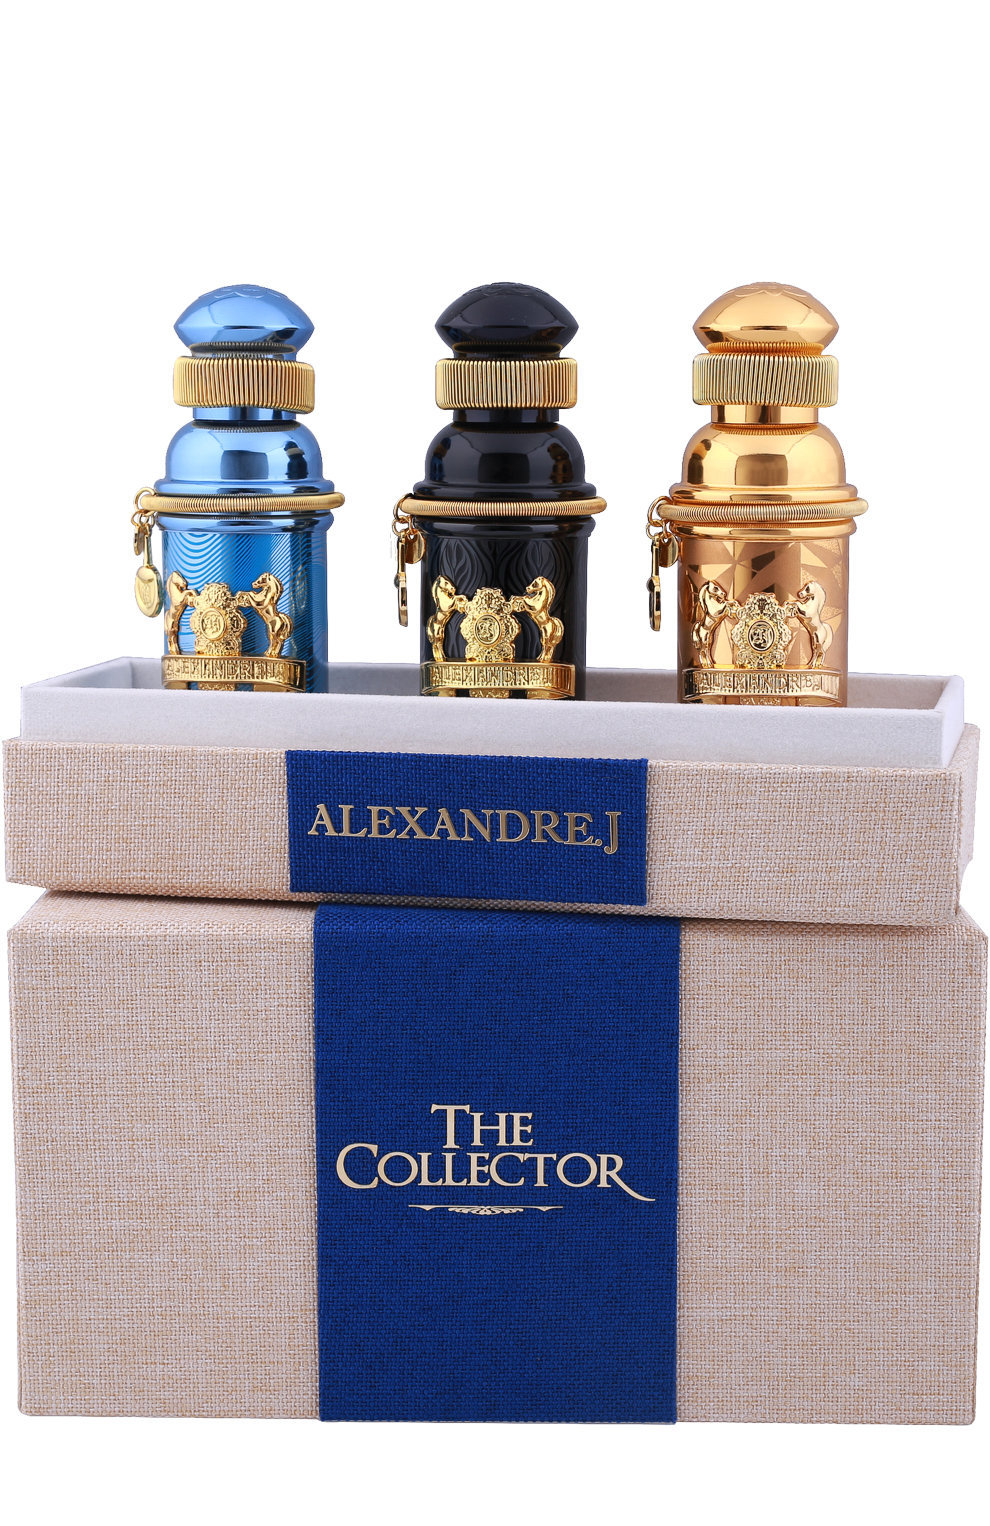 ALEXANDRE.J Набор The Collector 3 шт. по 8мл.